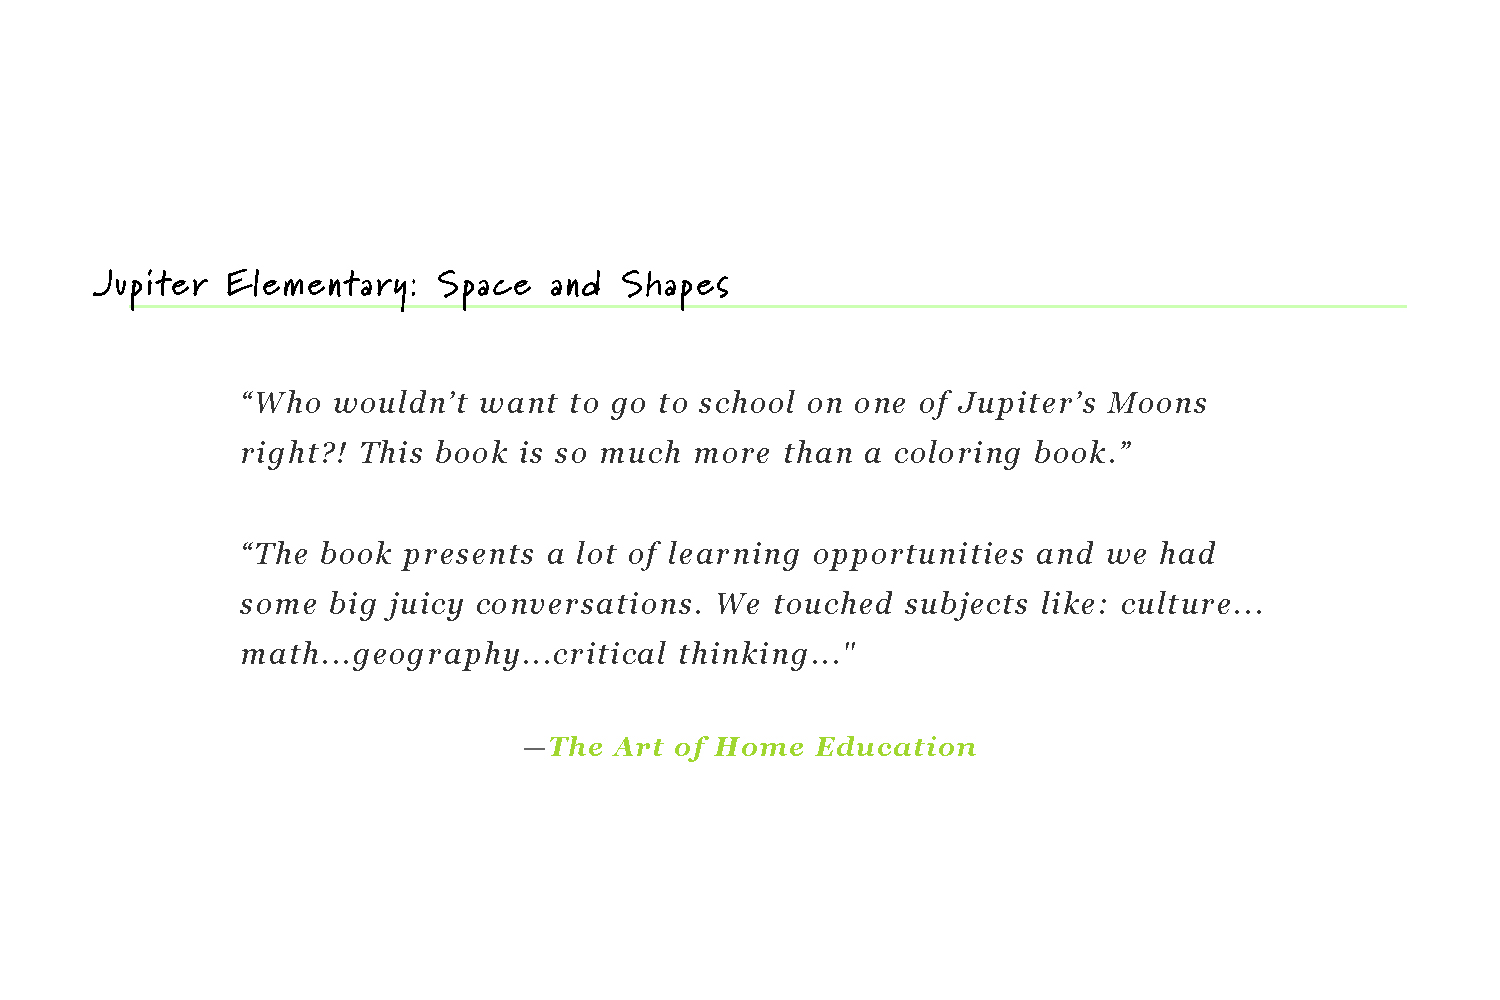 Jupiter Elementary: Space and Shapes